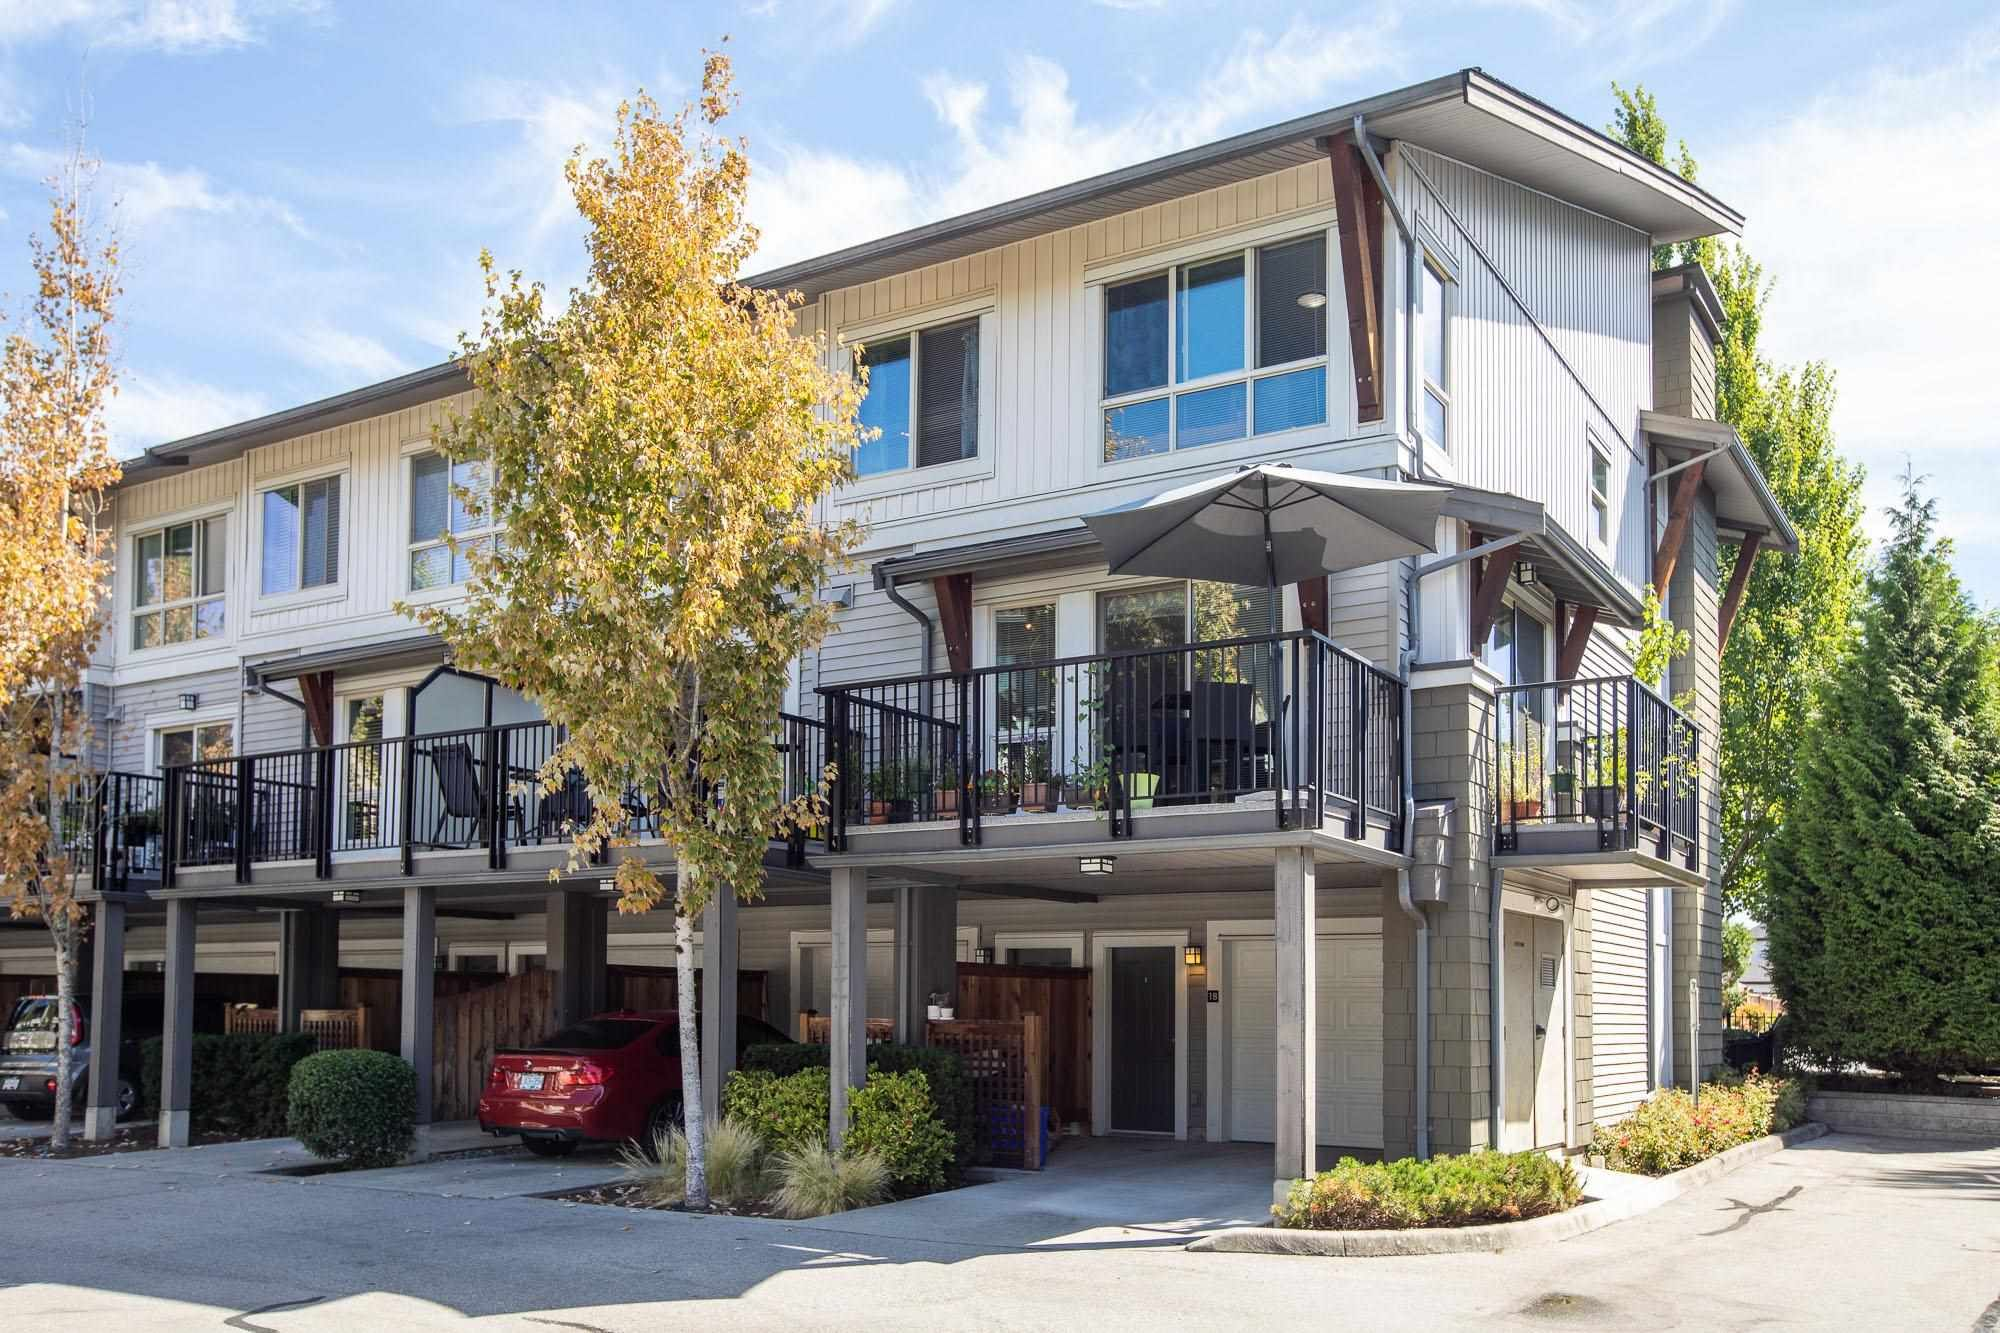 """Main Photo: 18 6671 121 Street in Surrey: West Newton Townhouse for sale in """"SALUS"""" : MLS®# R2606956"""